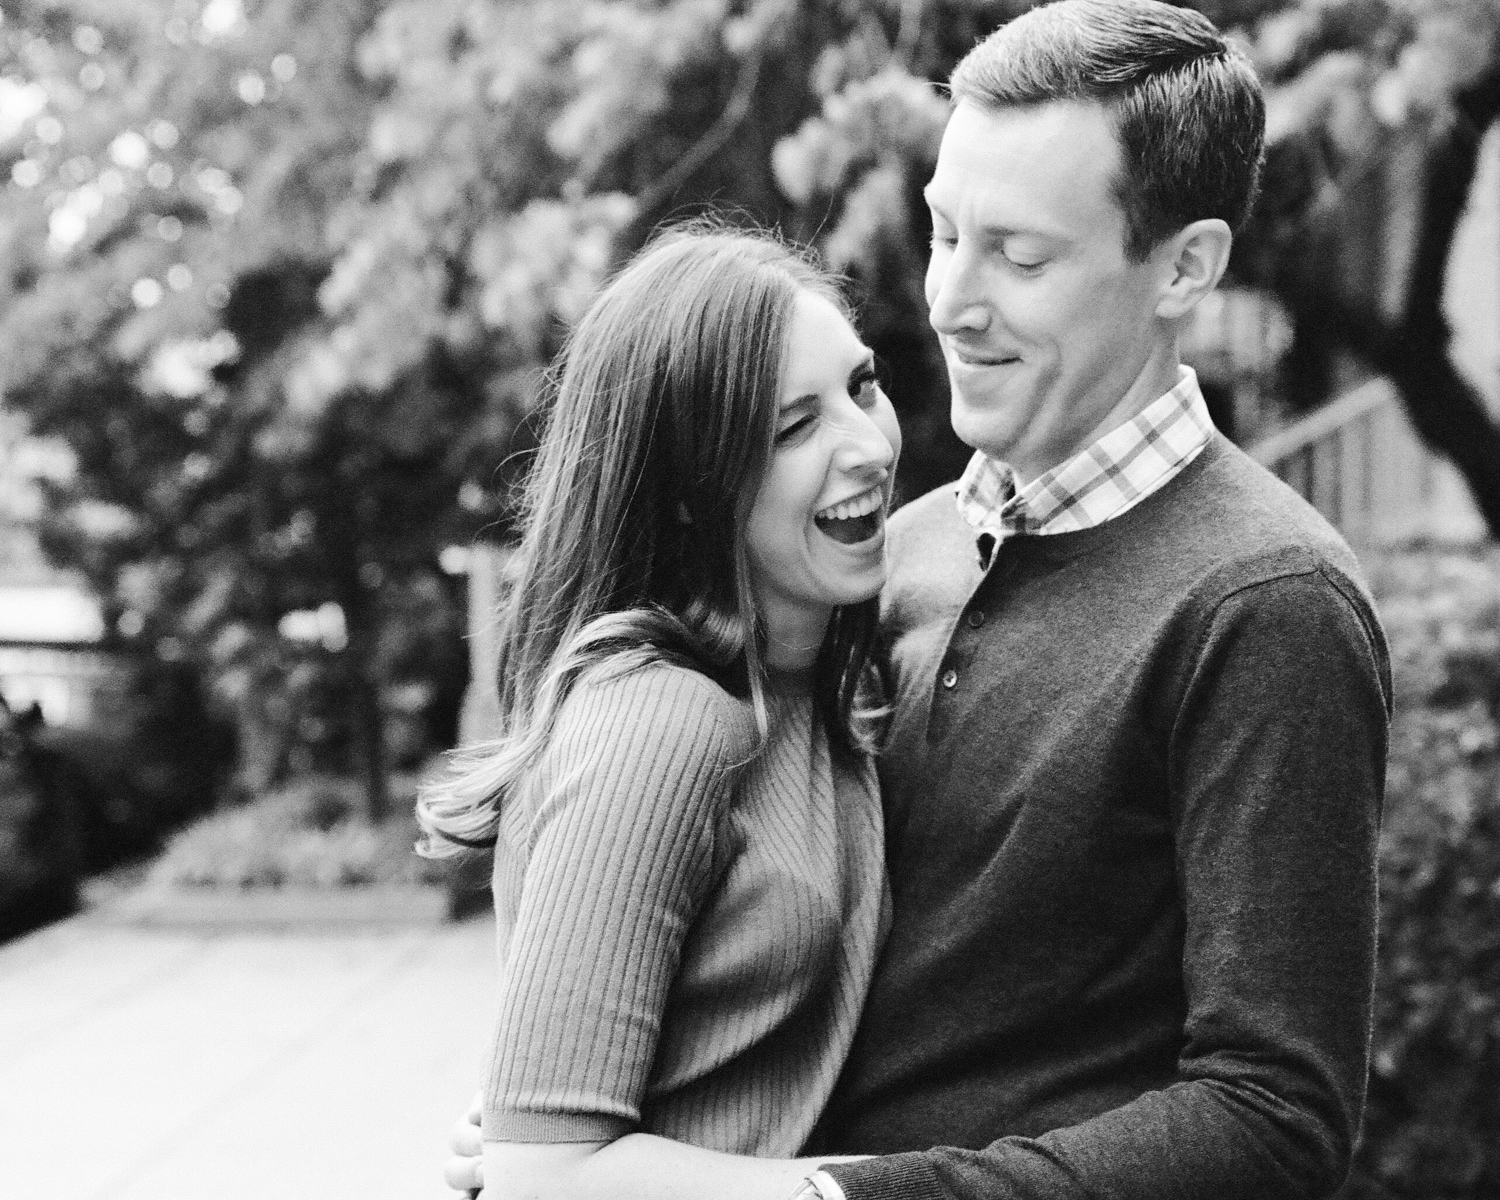 engagement portraits at Meridian Hill Park in Washington DC